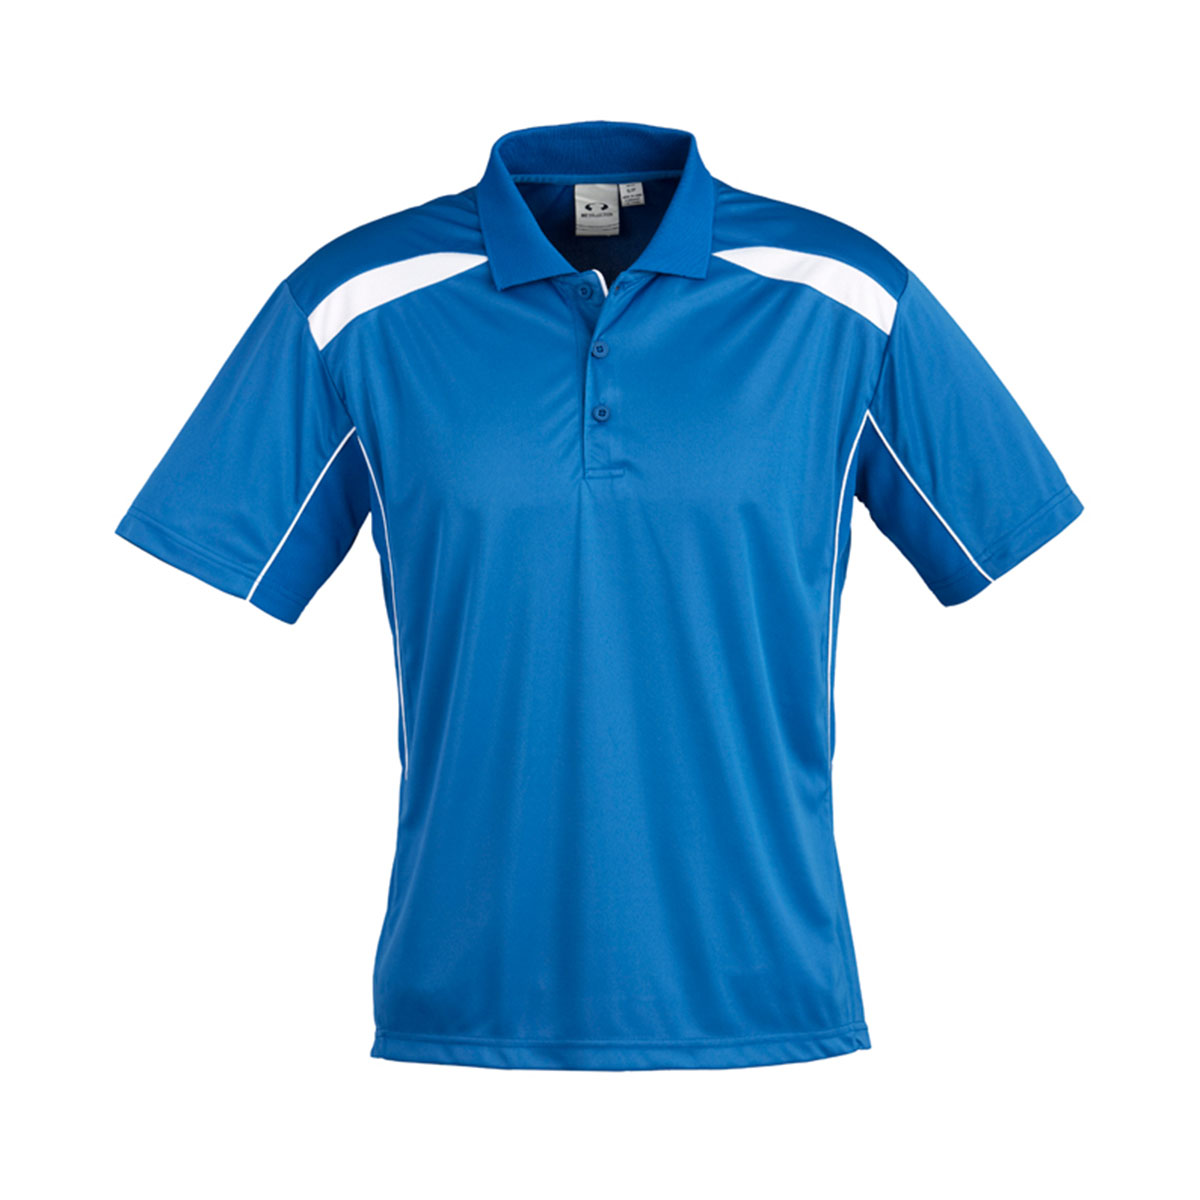 Mens United Short Sleeve Polo-Royal / White